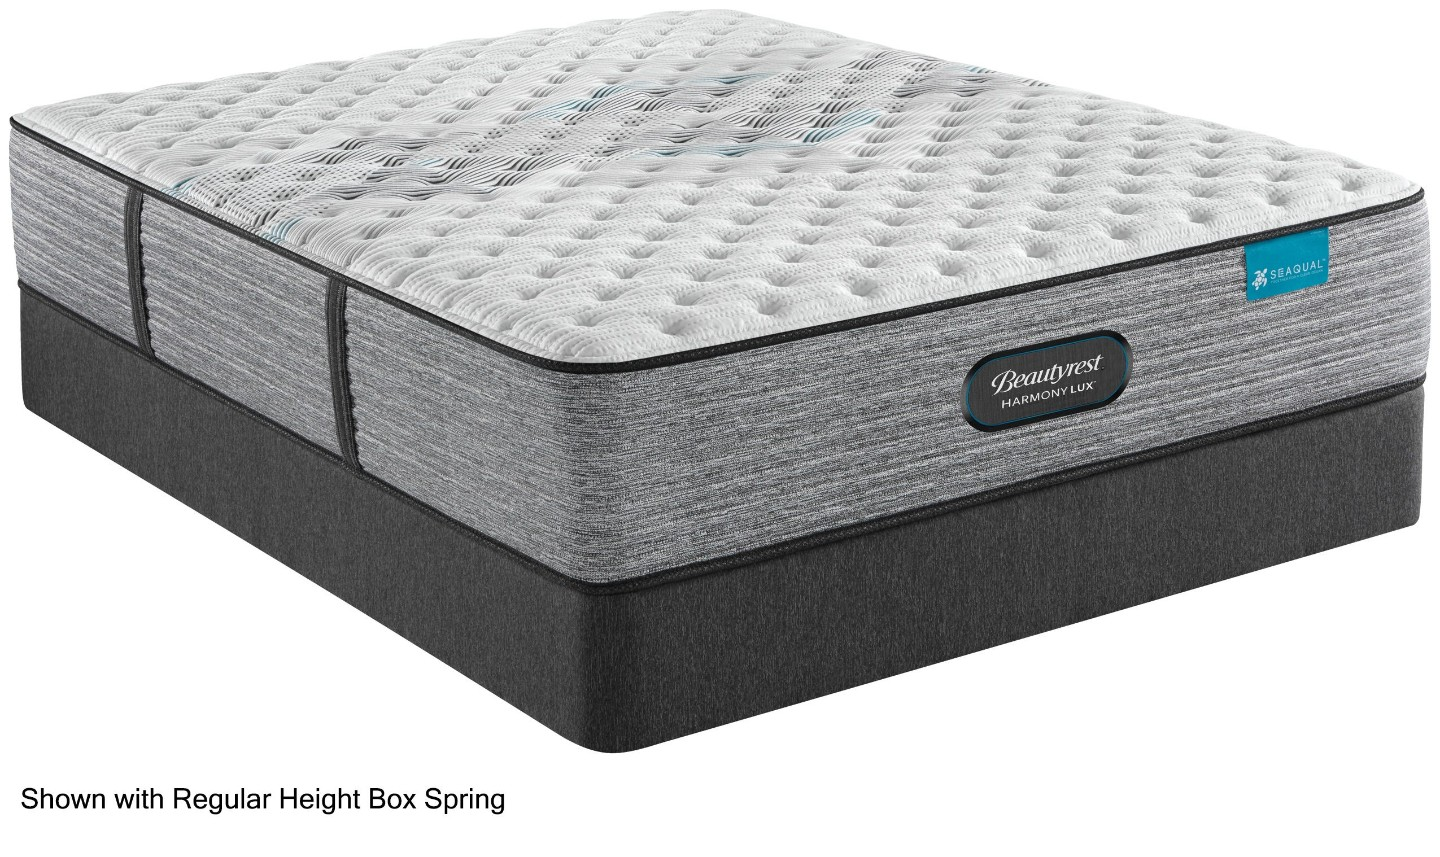 simmons-beautyrest-harmony-lux-hlc-1000-extra-firm-mattress-3.jpg